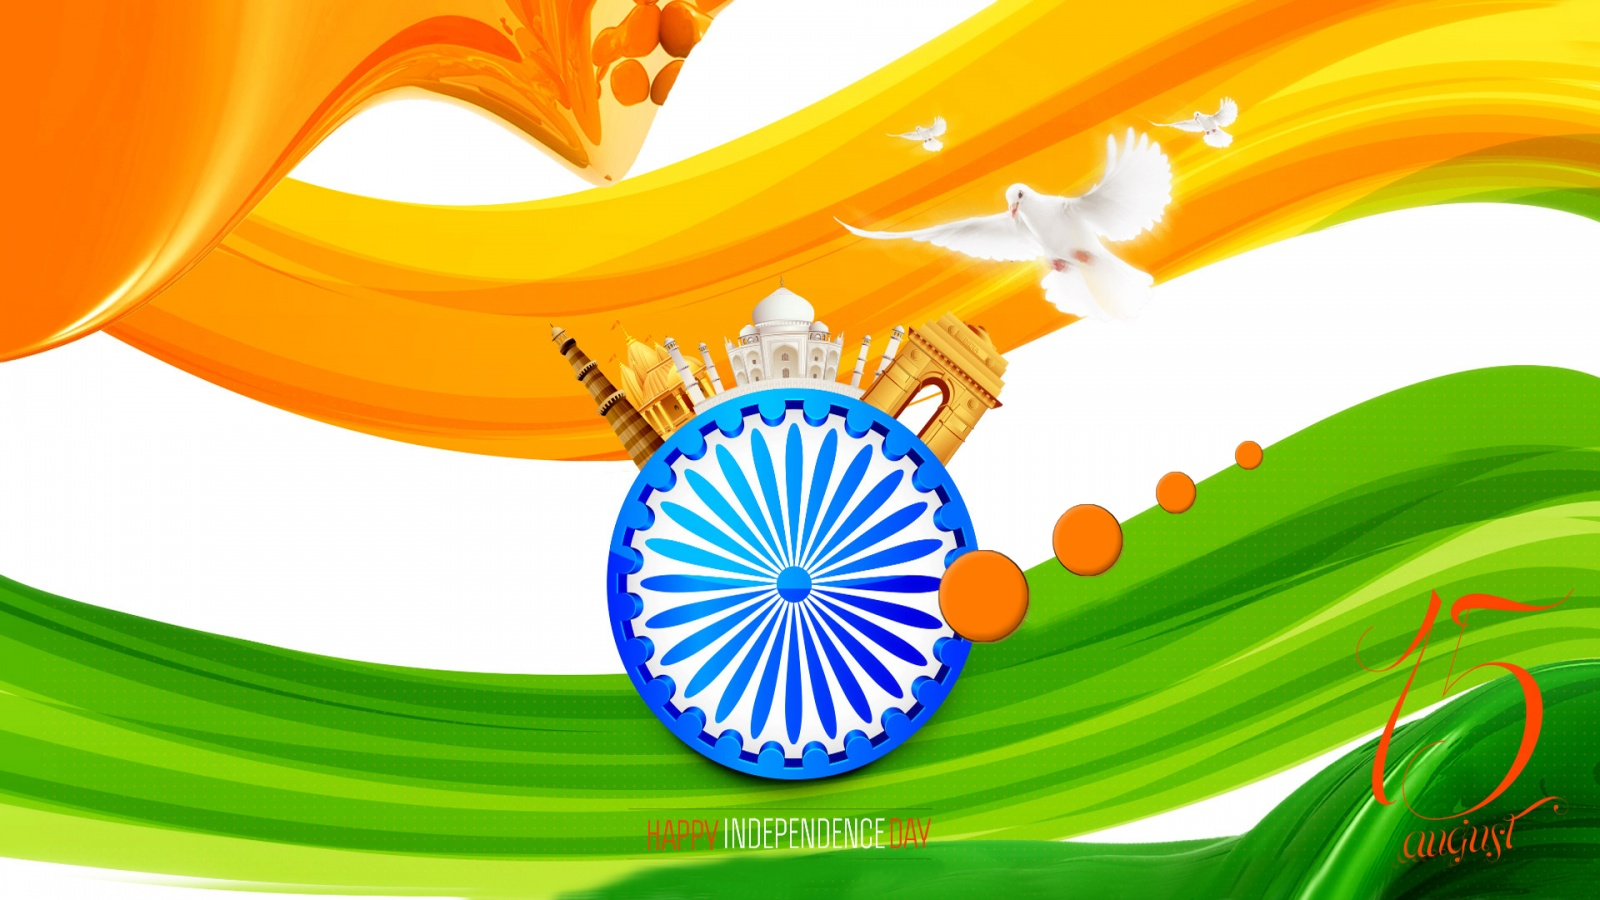 Indian Flag Independence Day Vande Mataram